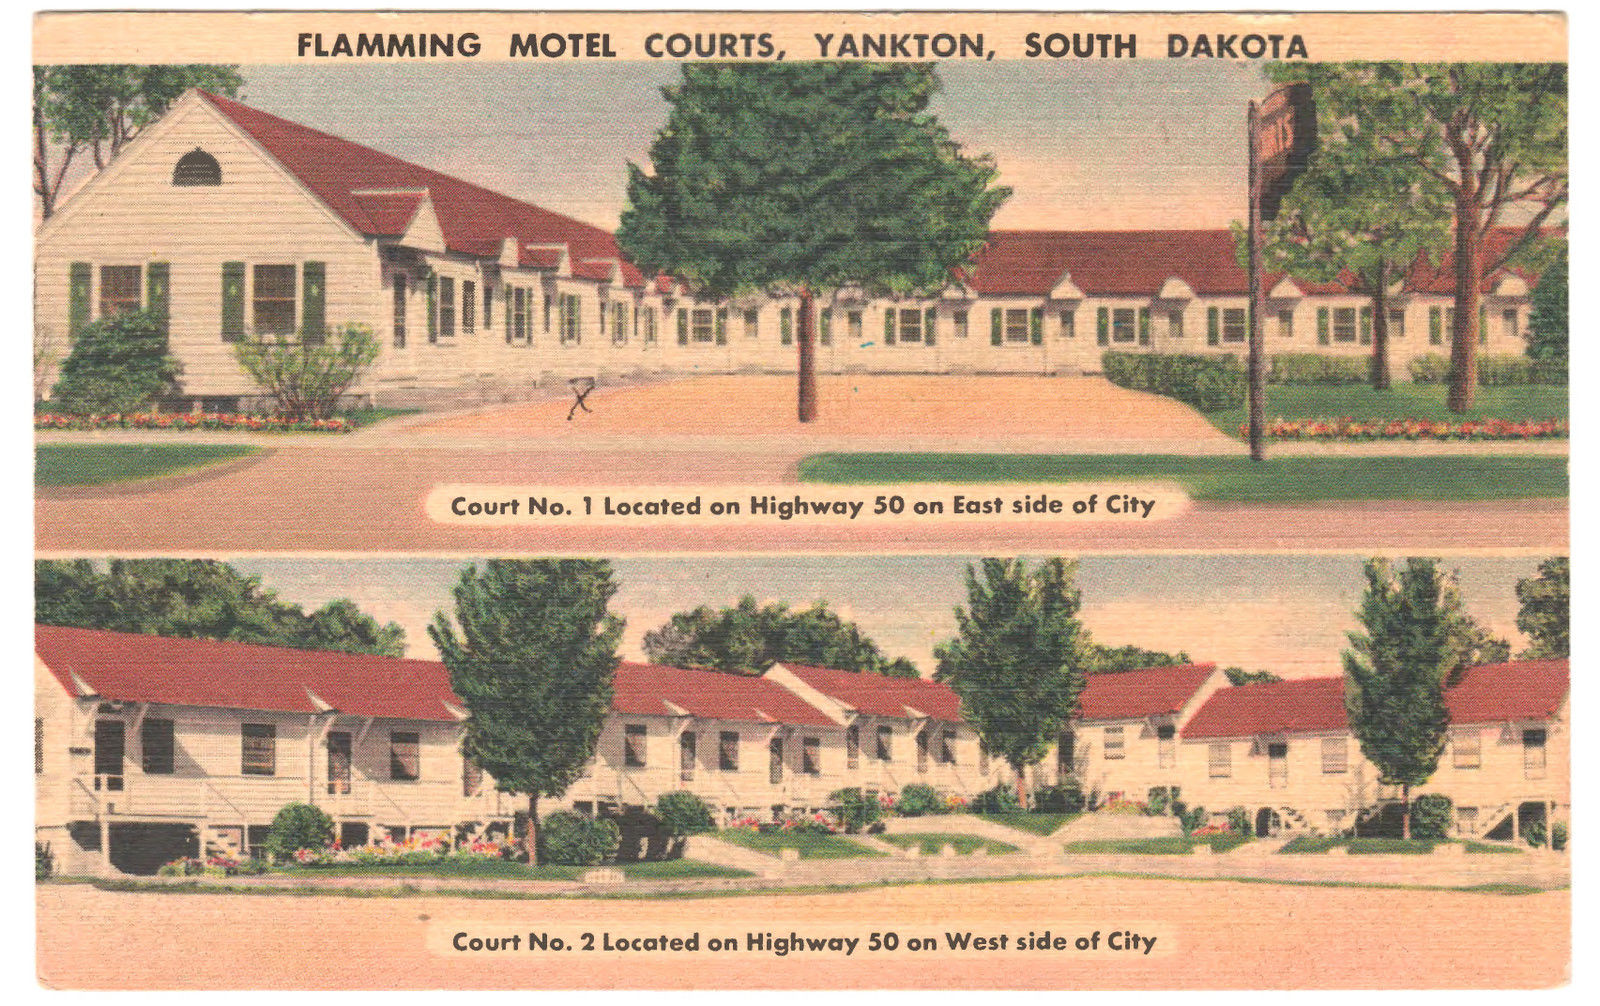 Vintage Motels in South Dakota